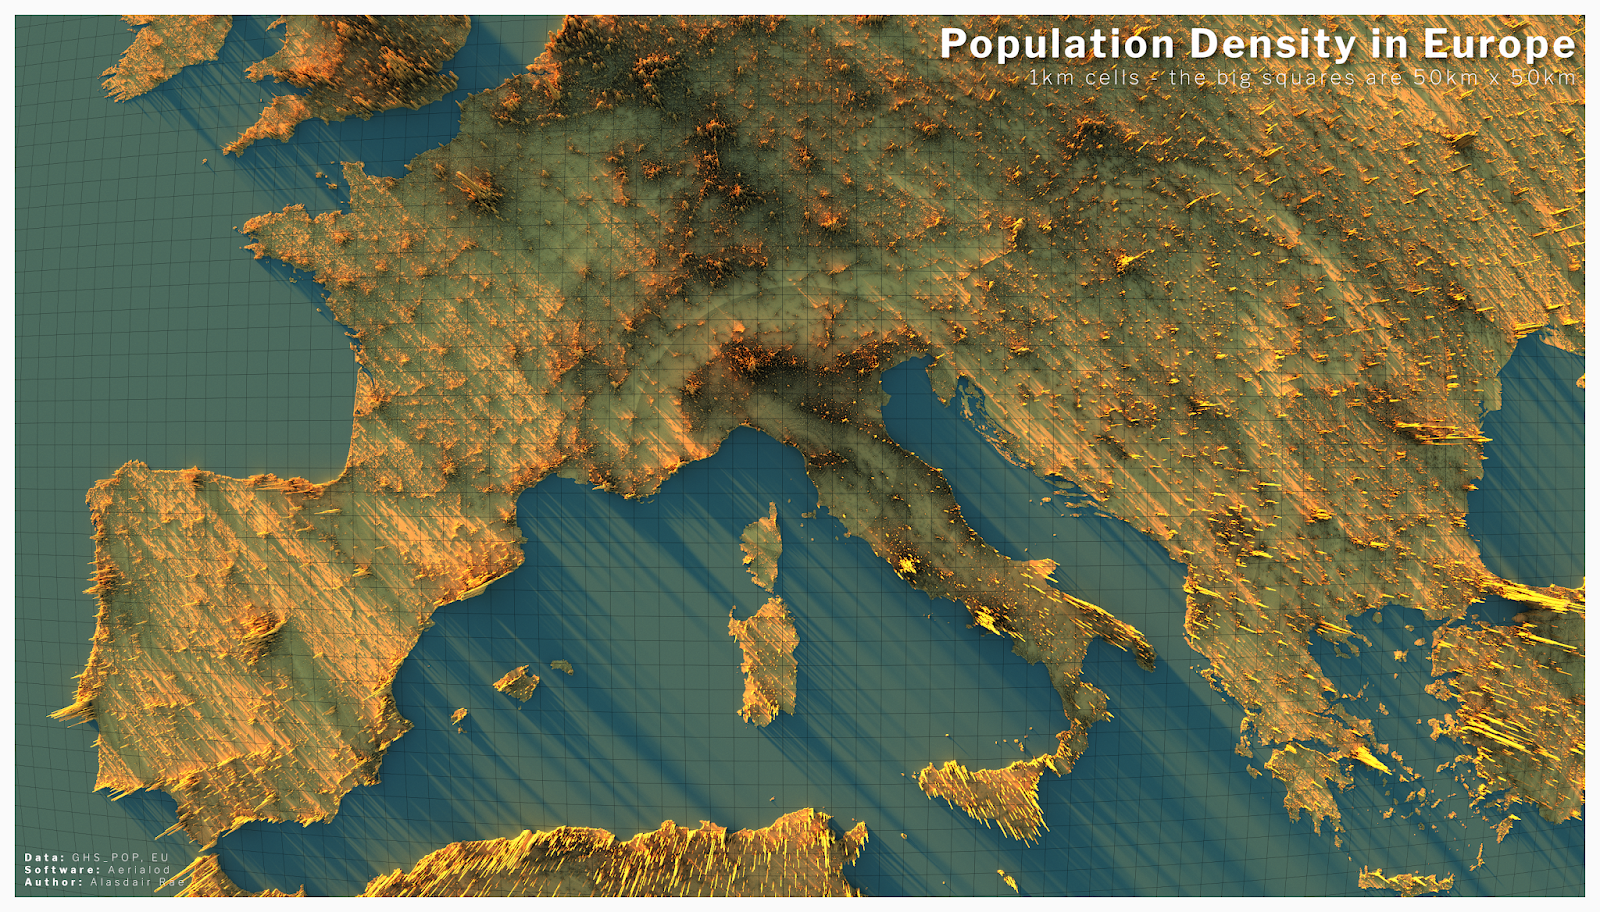 3D map showing population density across Europe